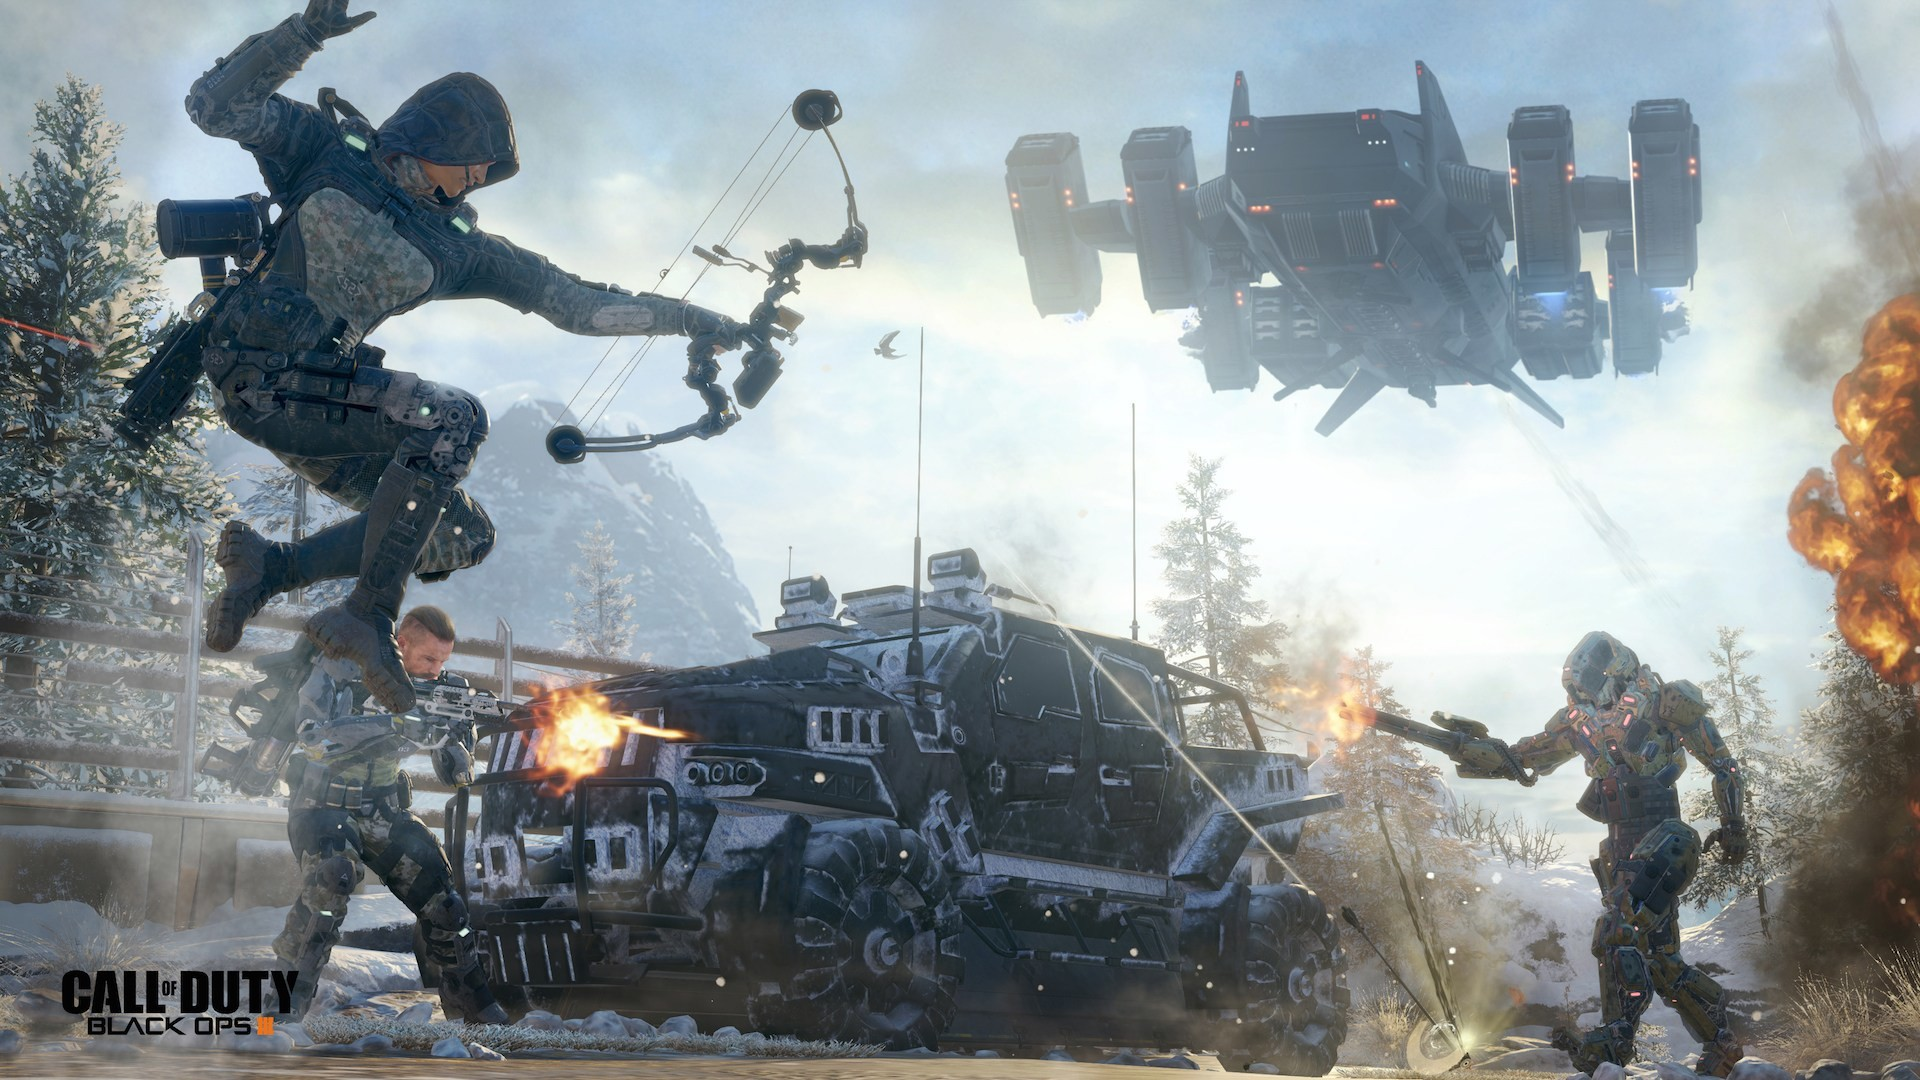 Awesome call of duty black ops 3 wallpaper Free Wallpaper For Desktop and  Mobile in All